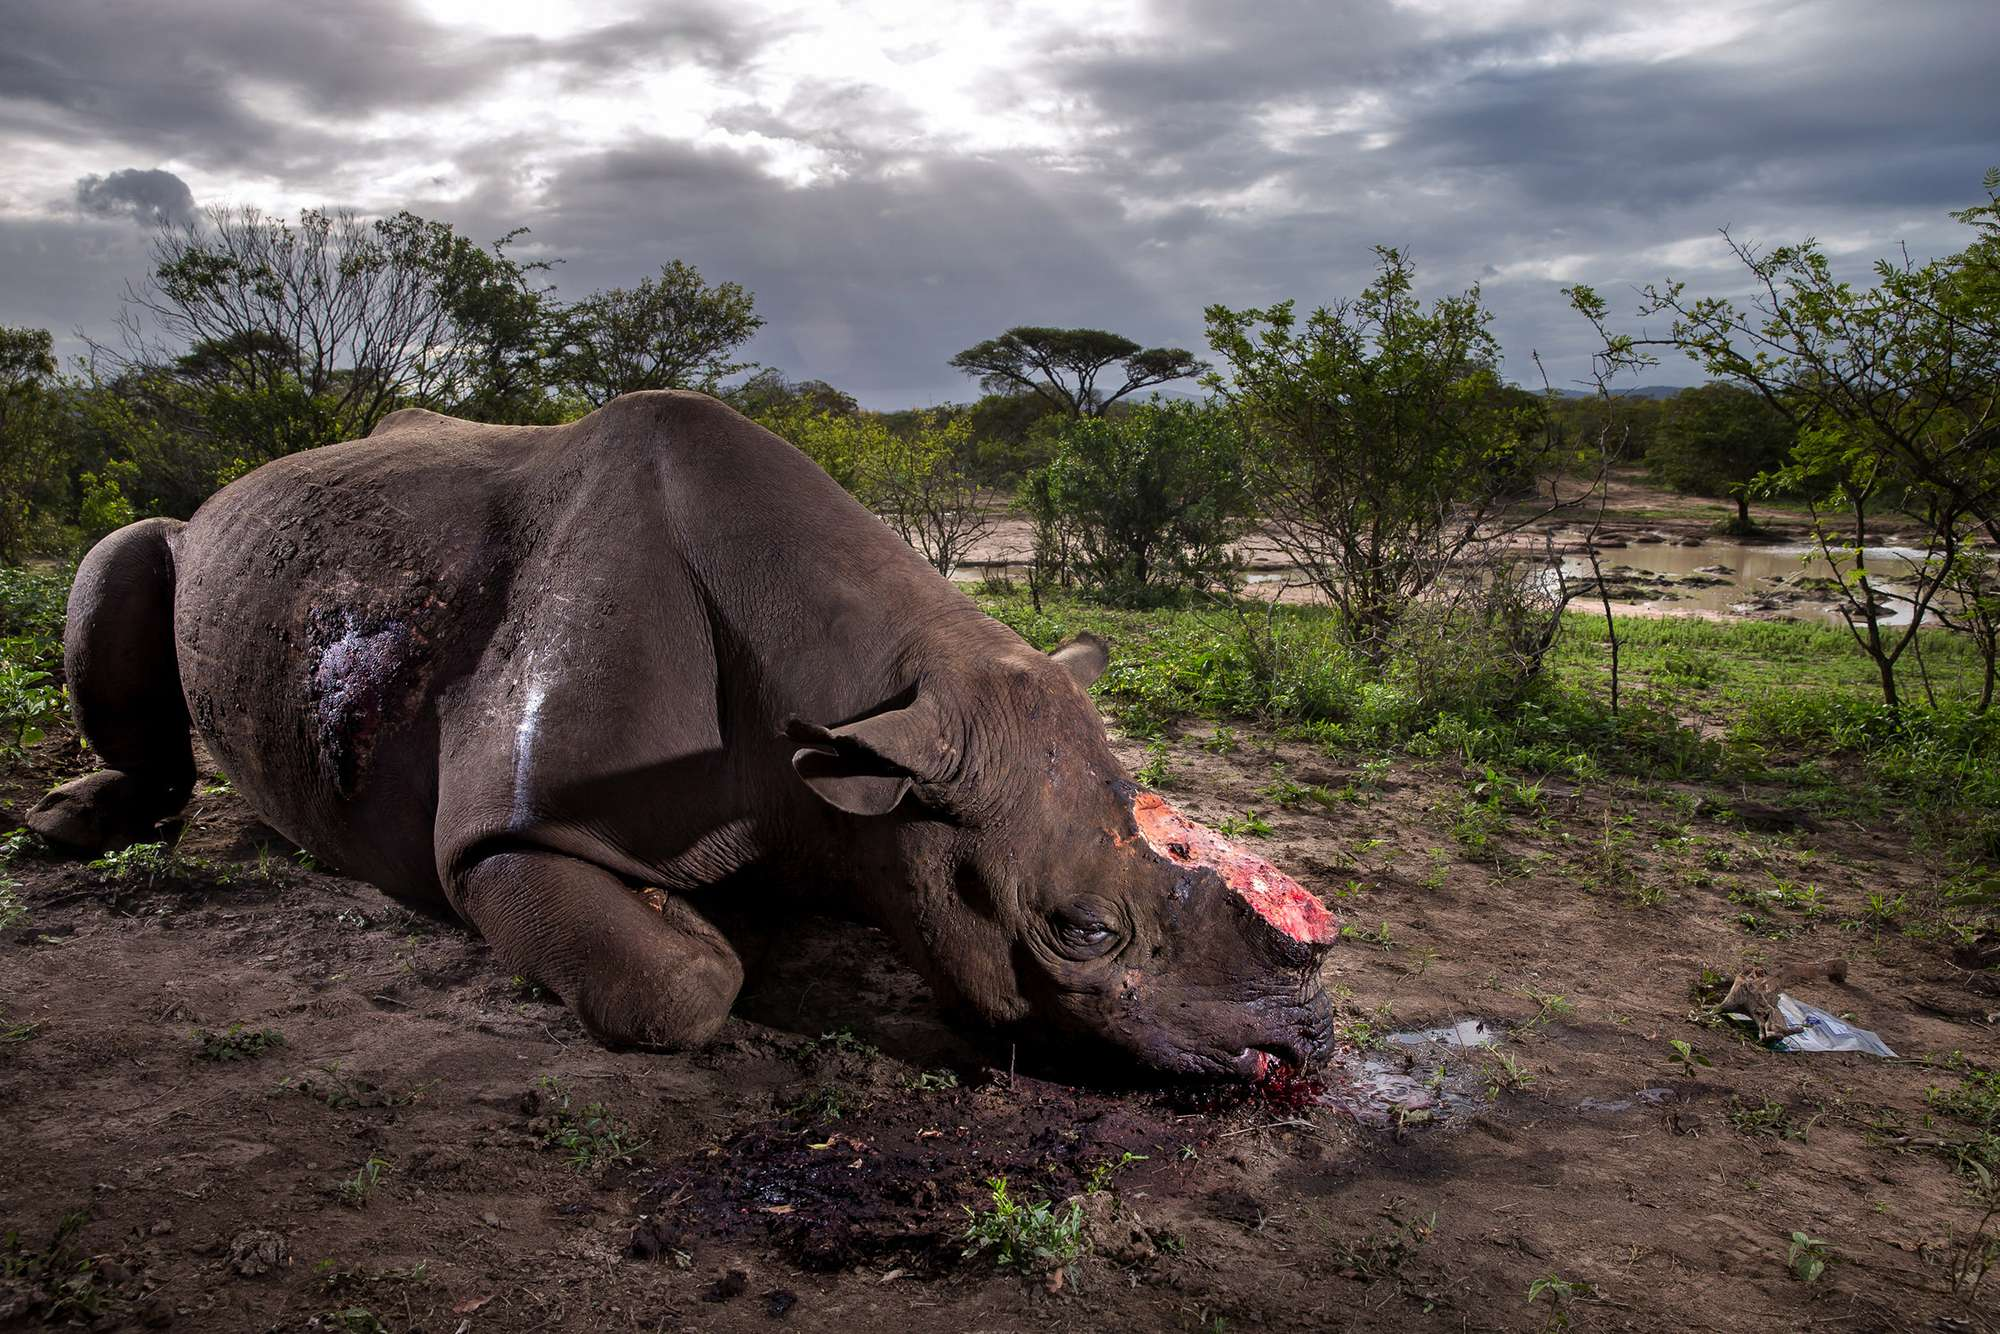 Black rhinoceros dead, Hluhluwe Imfolozi, South Africa